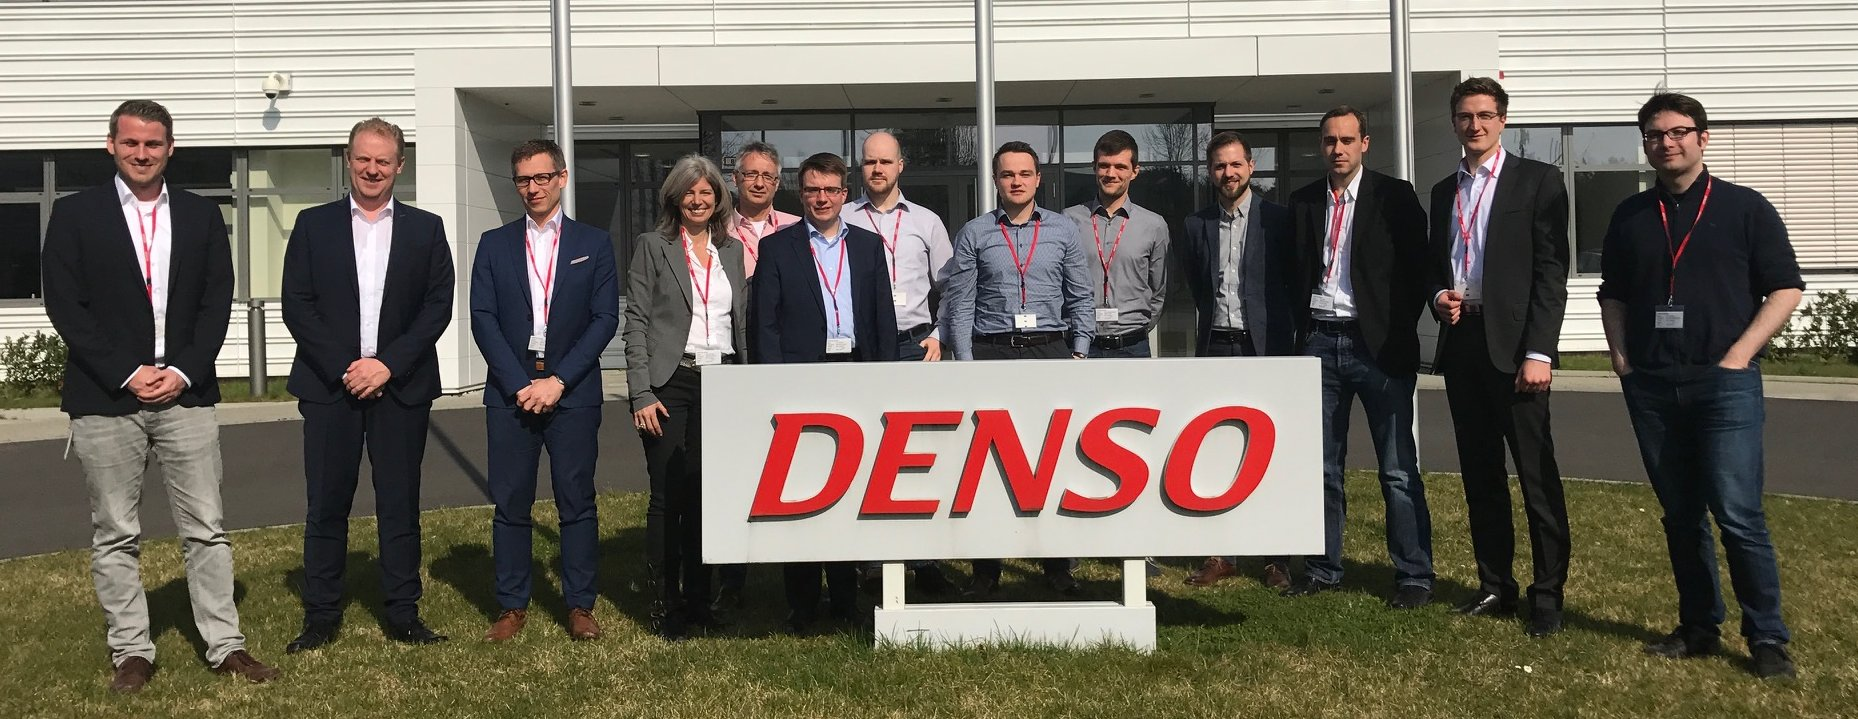 Projektpartner bei DENSO in Wegberg